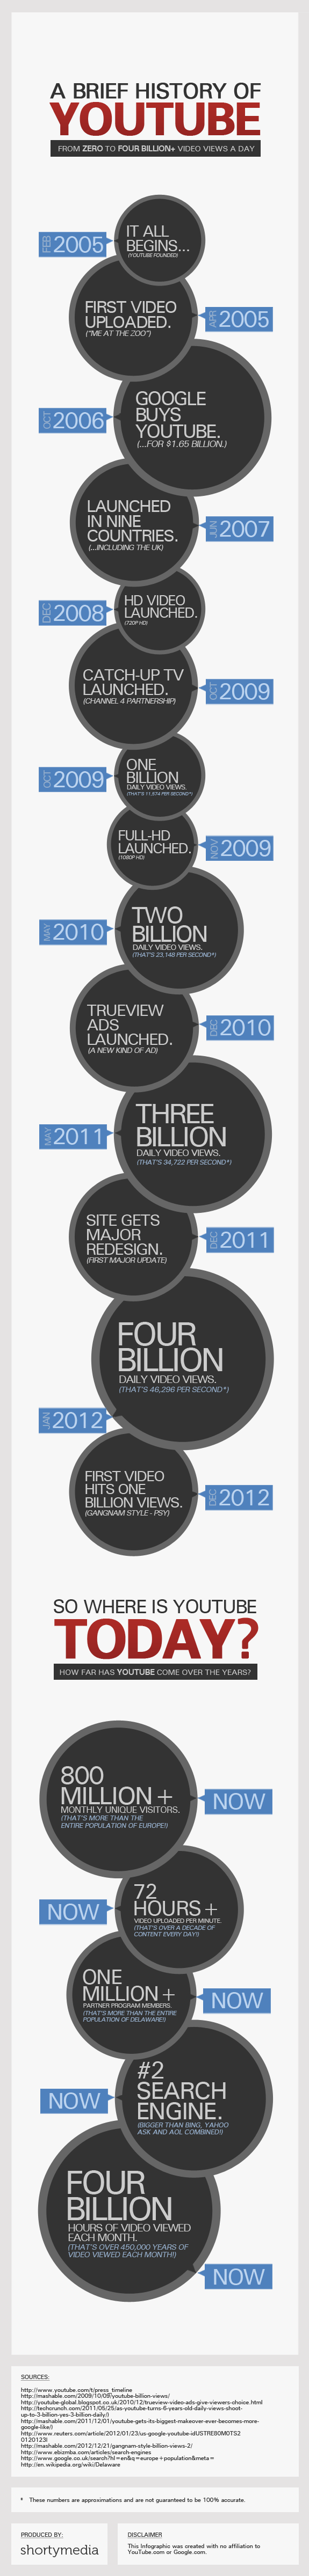 A step by step History of YouTube from Zero to Four Billion+ Views a Day